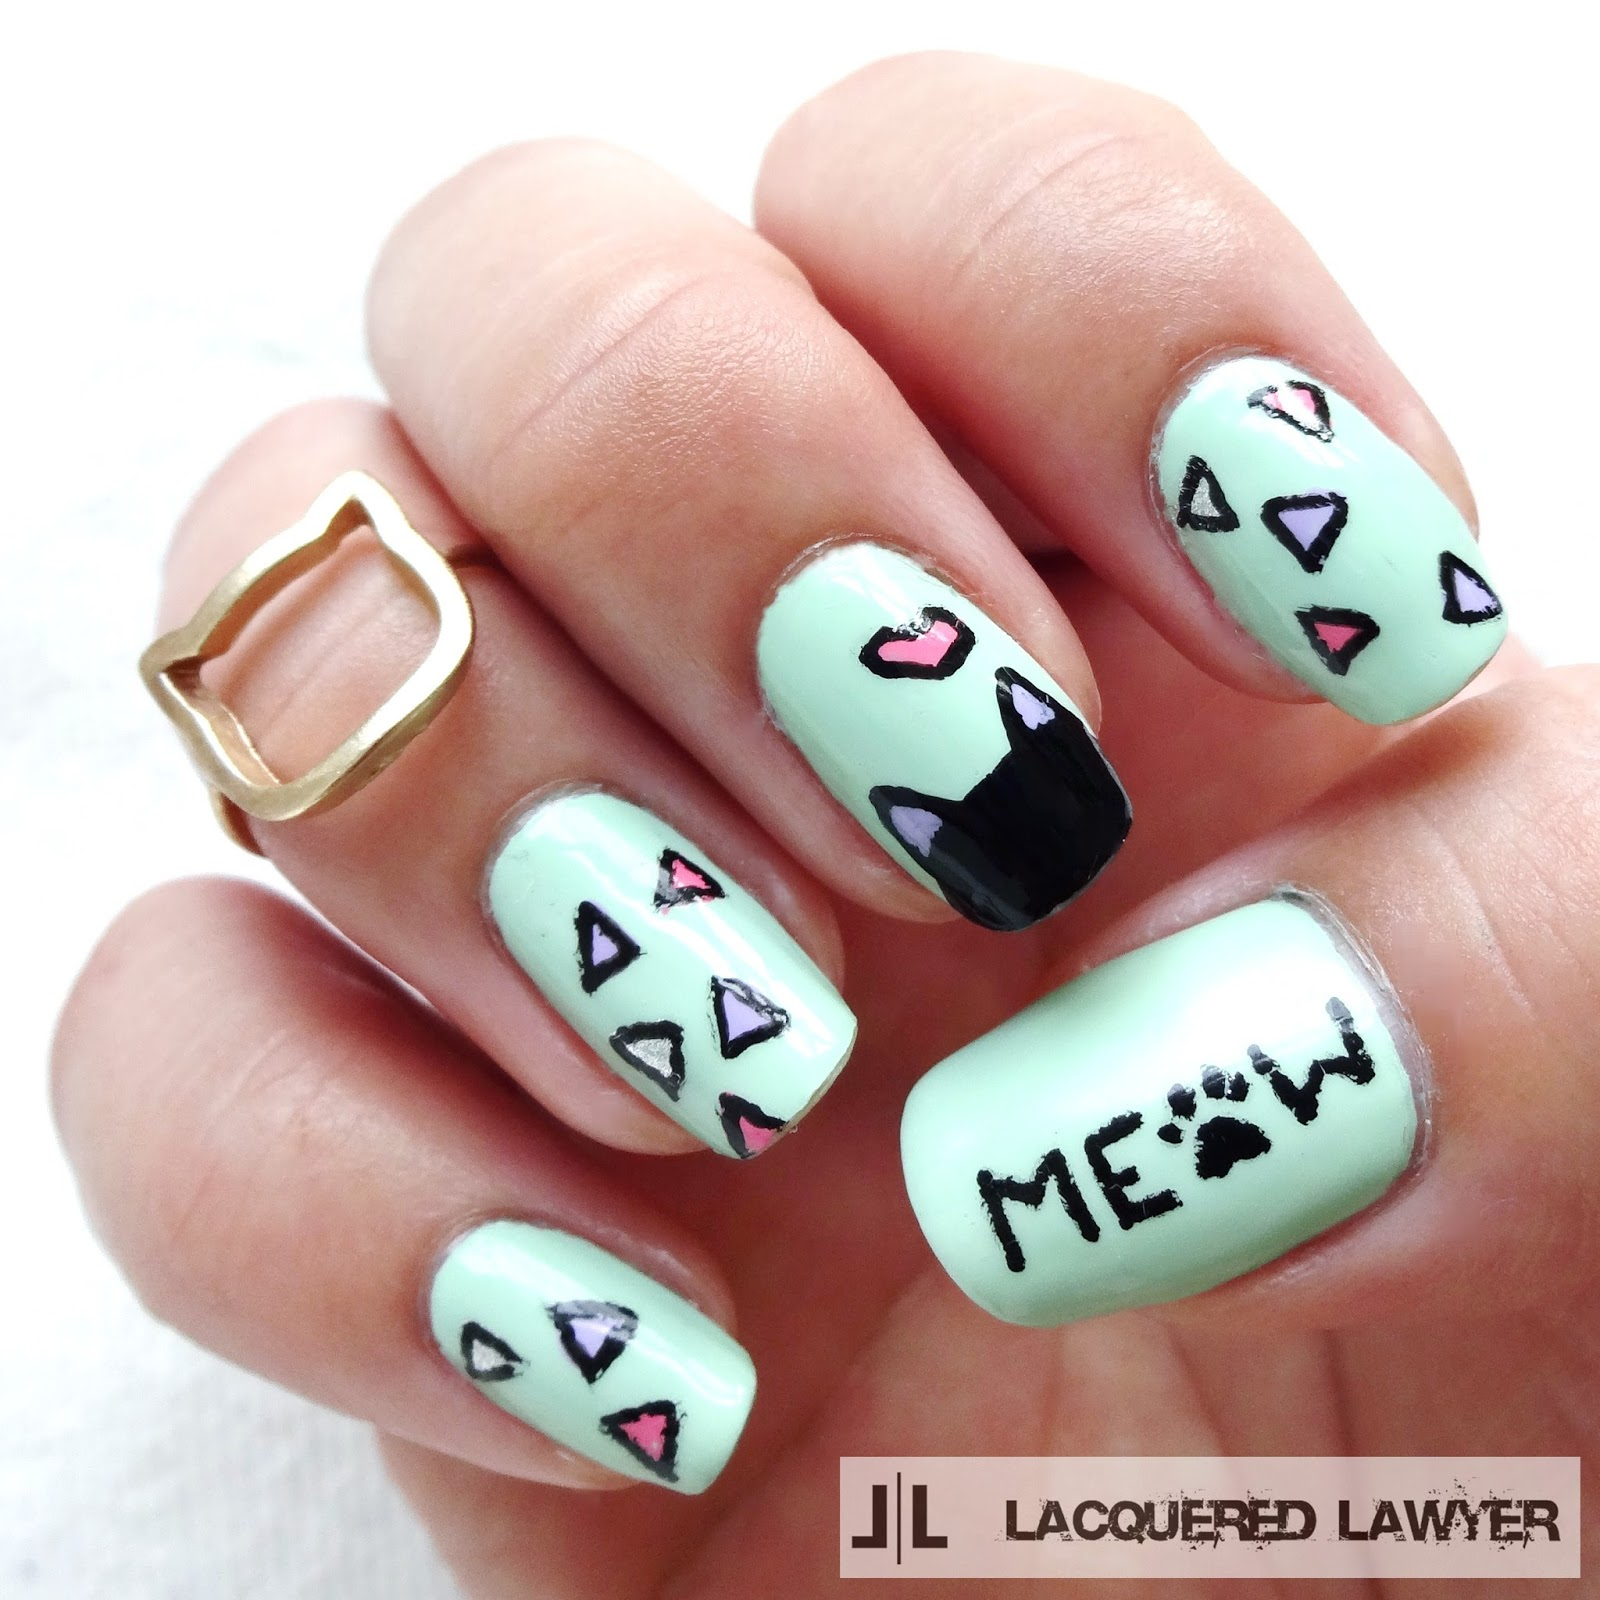 Lacquered lawyer nail art blog the cats meow the cats meow cat nail art prinsesfo Images